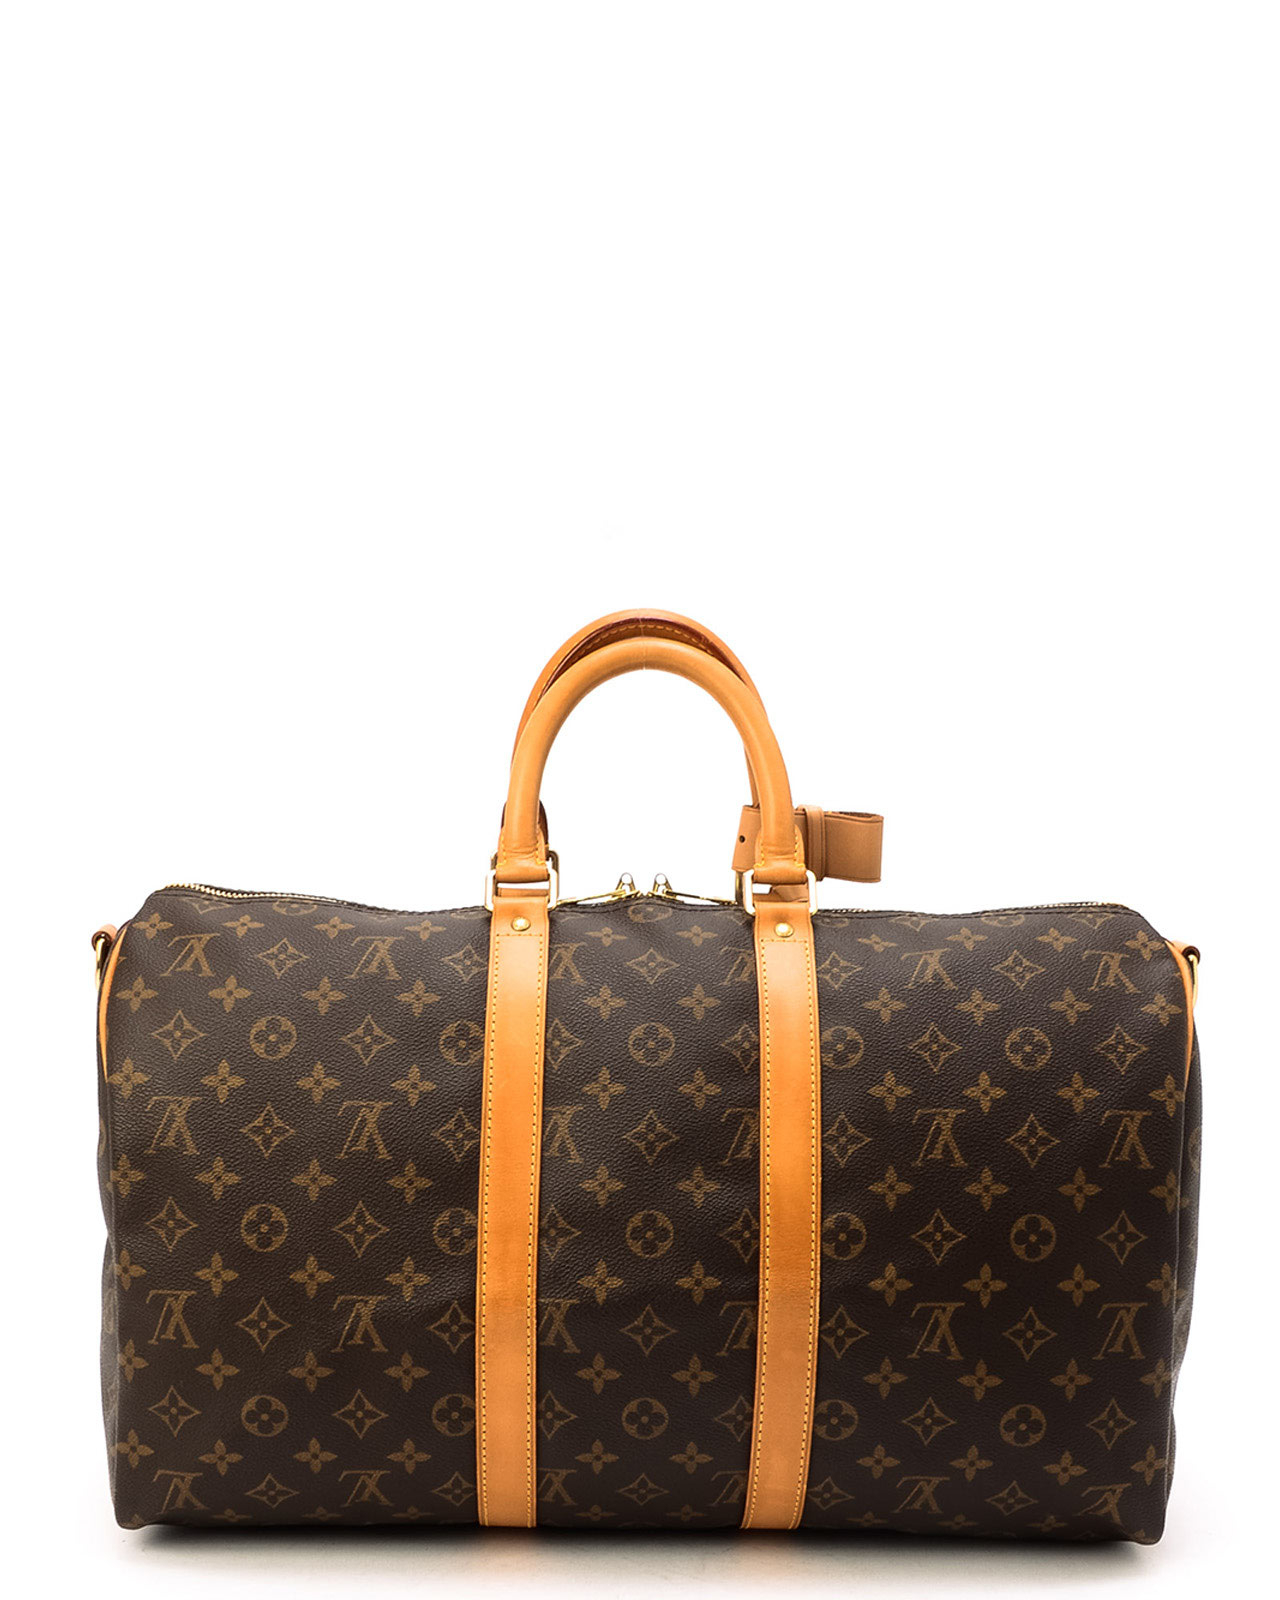 lyst louis vuitton monogram keepall 45 bandou travel bag in brown. Black Bedroom Furniture Sets. Home Design Ideas